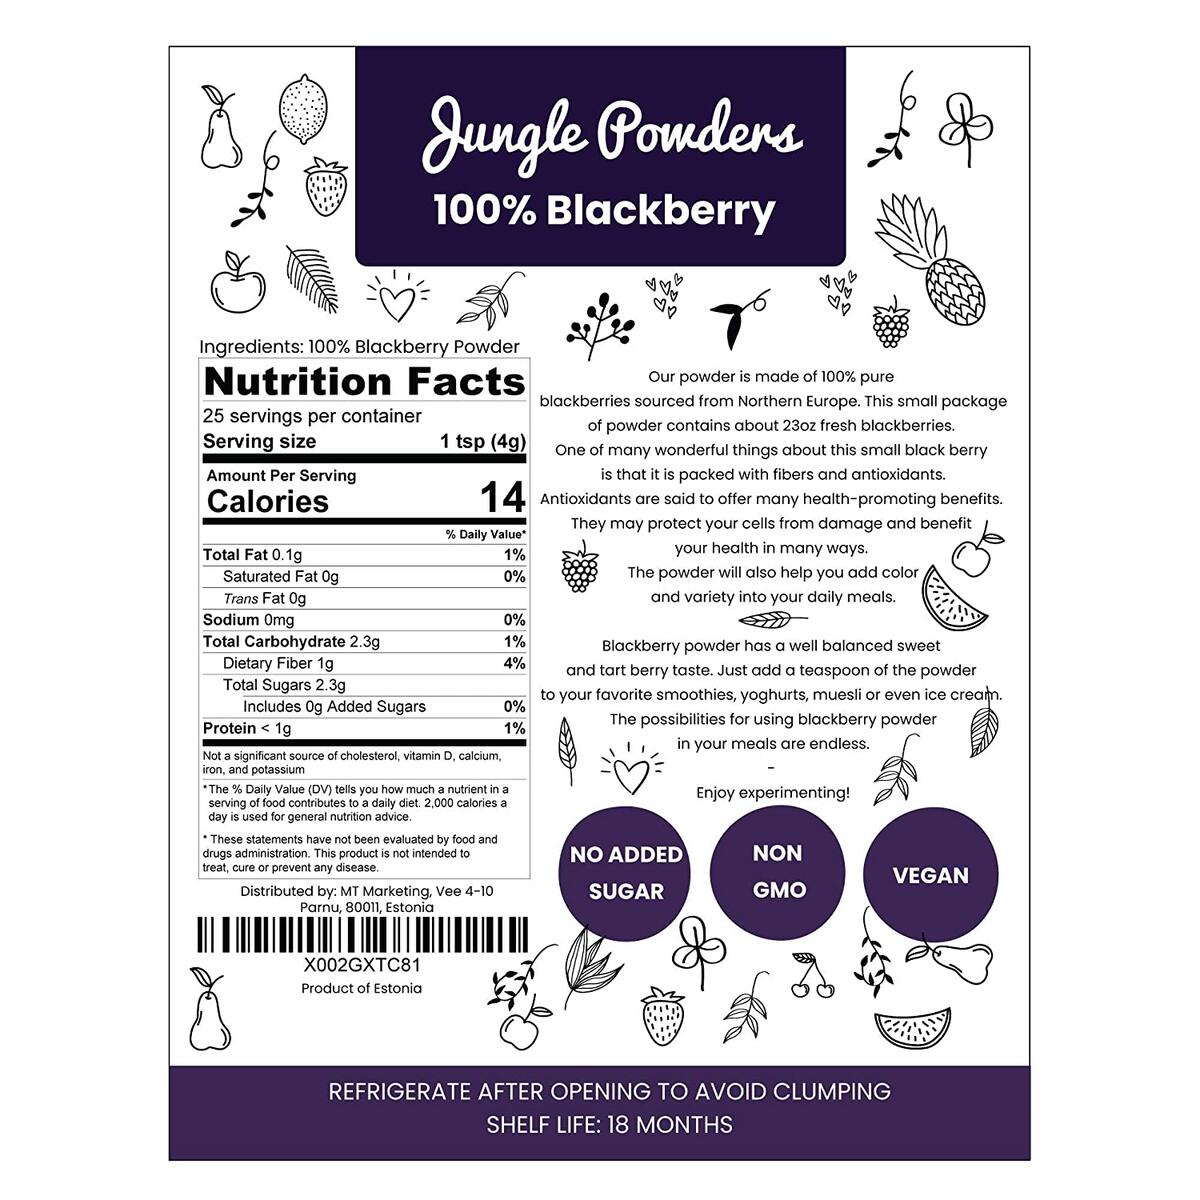 Jungle Powders Blackberry Powder | 3.5oz 100% Natural Non GMO Vegan Friendly Nordic Blackberry Extract | Freeze Dried Antioxidant Purple Superfood Concentrate